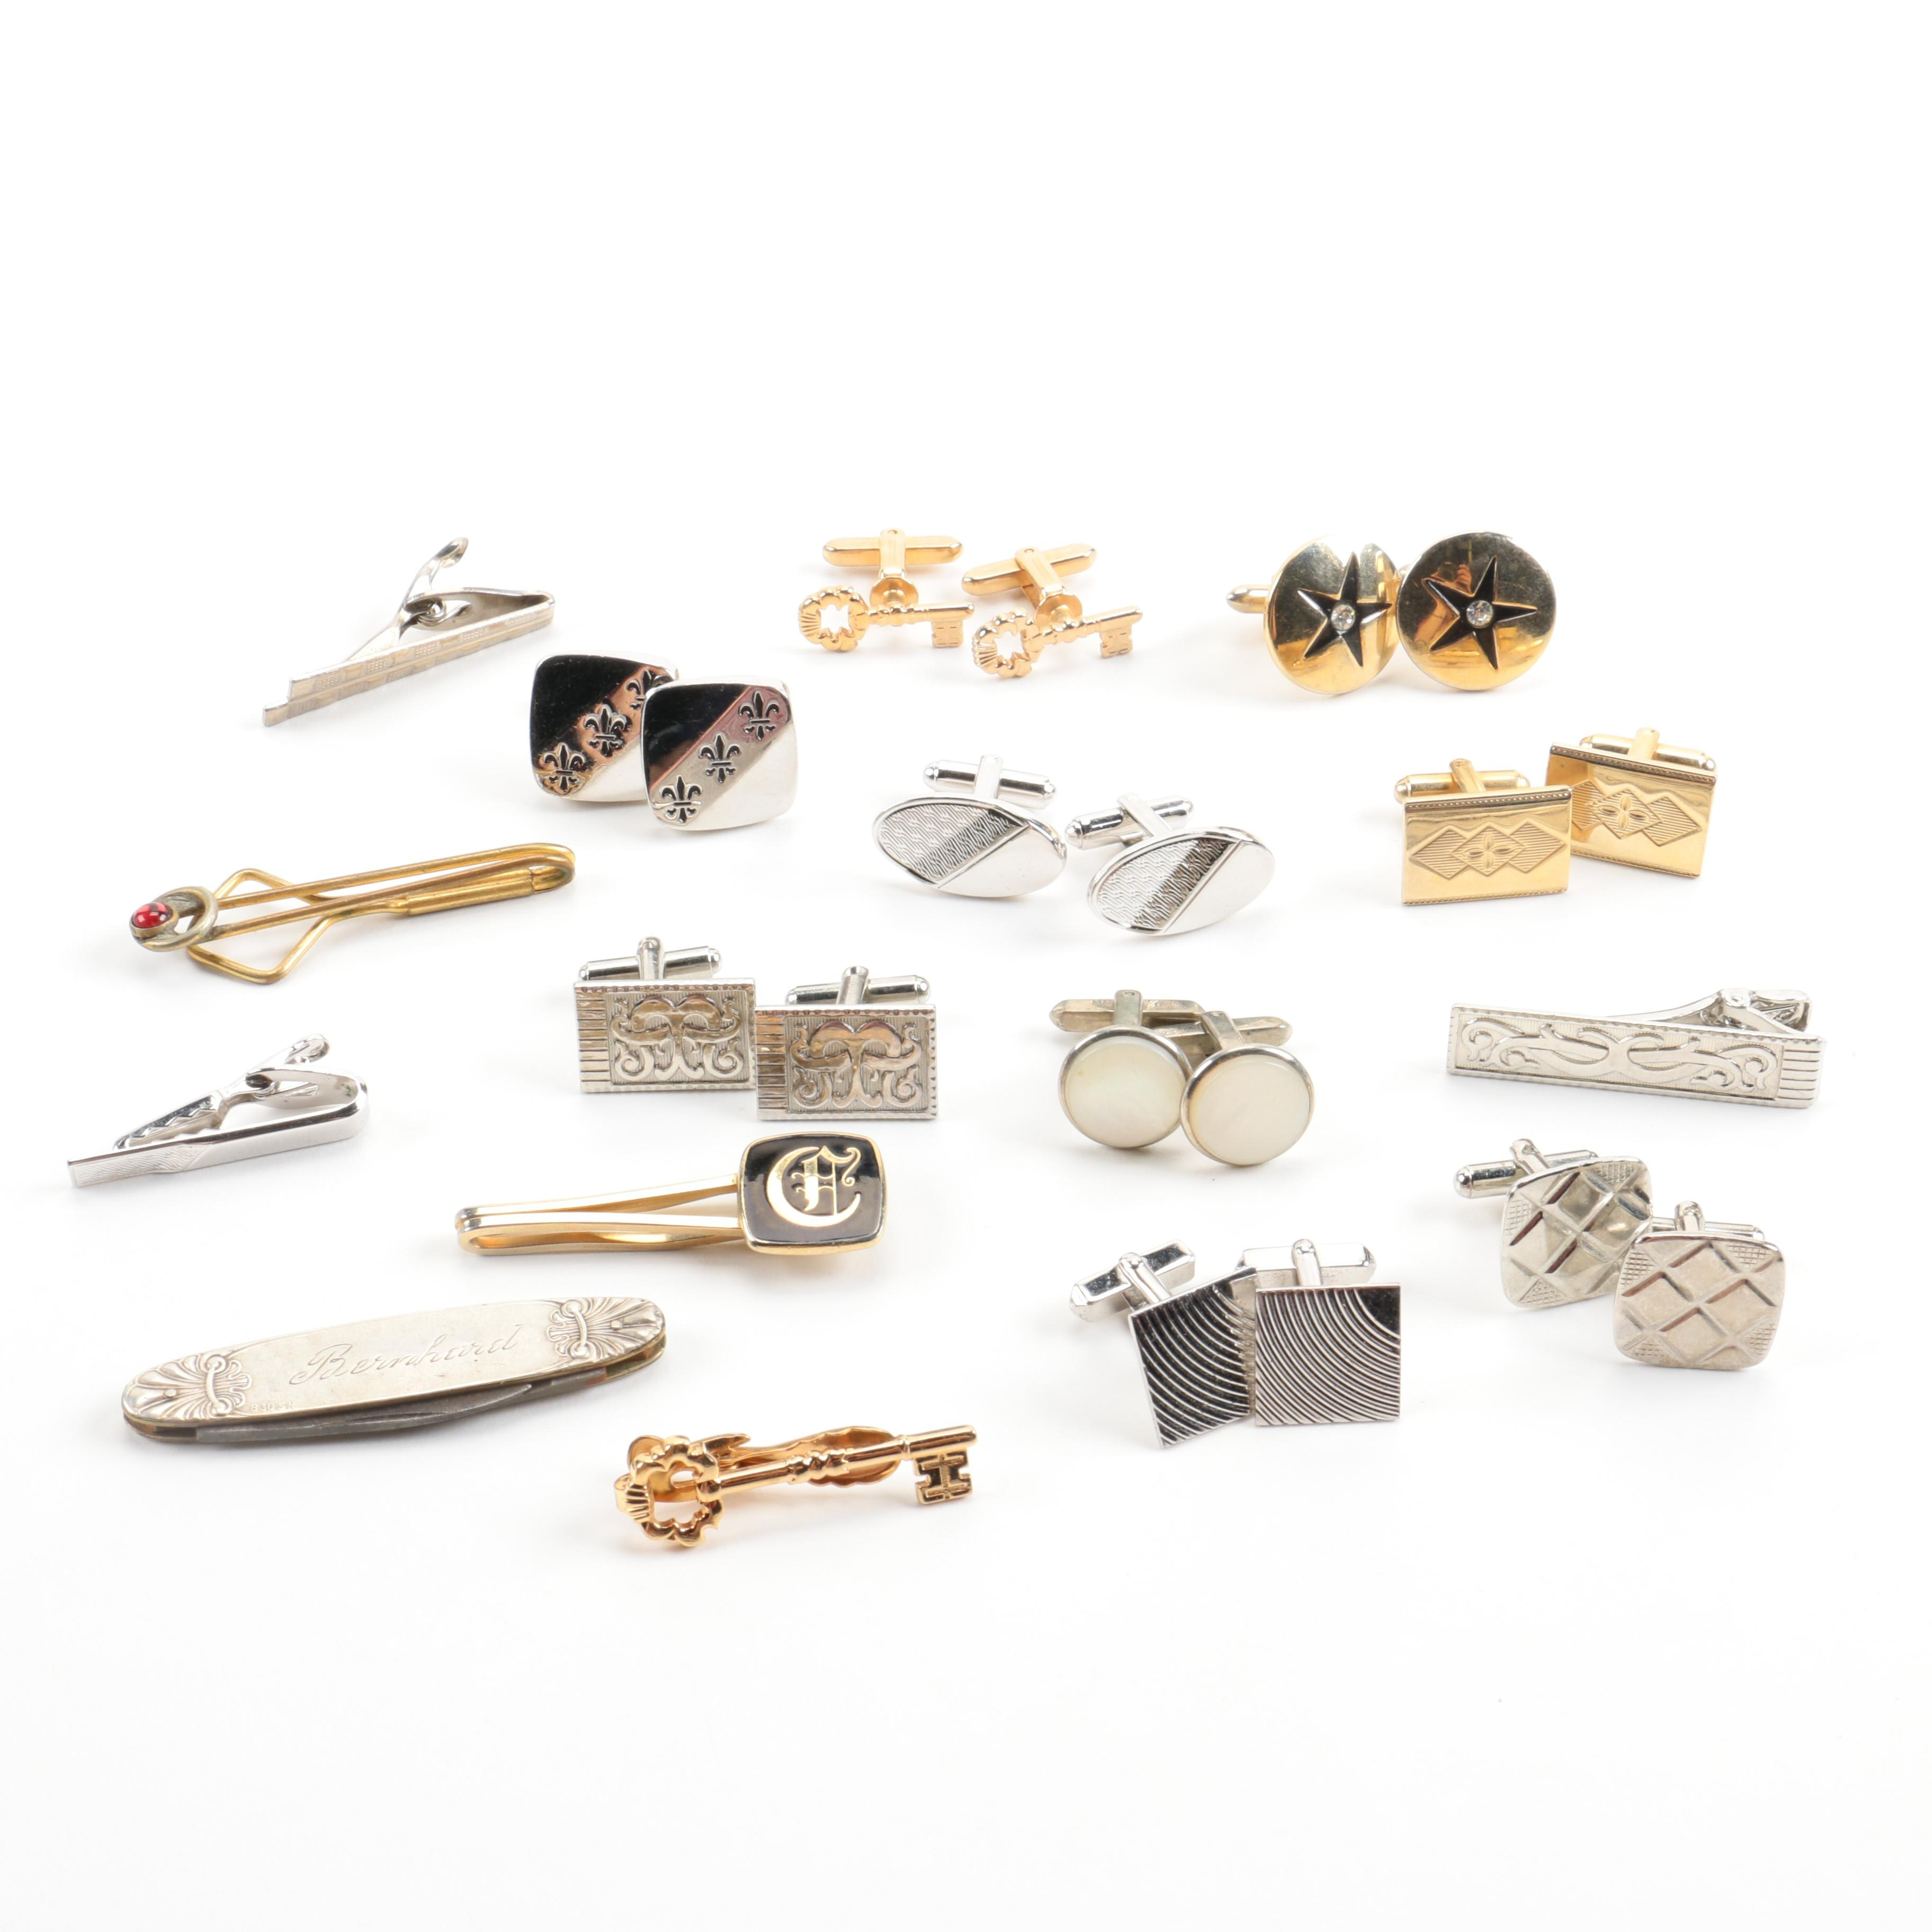 Sterling and 800 Silver Tie Clips and Cufflinks